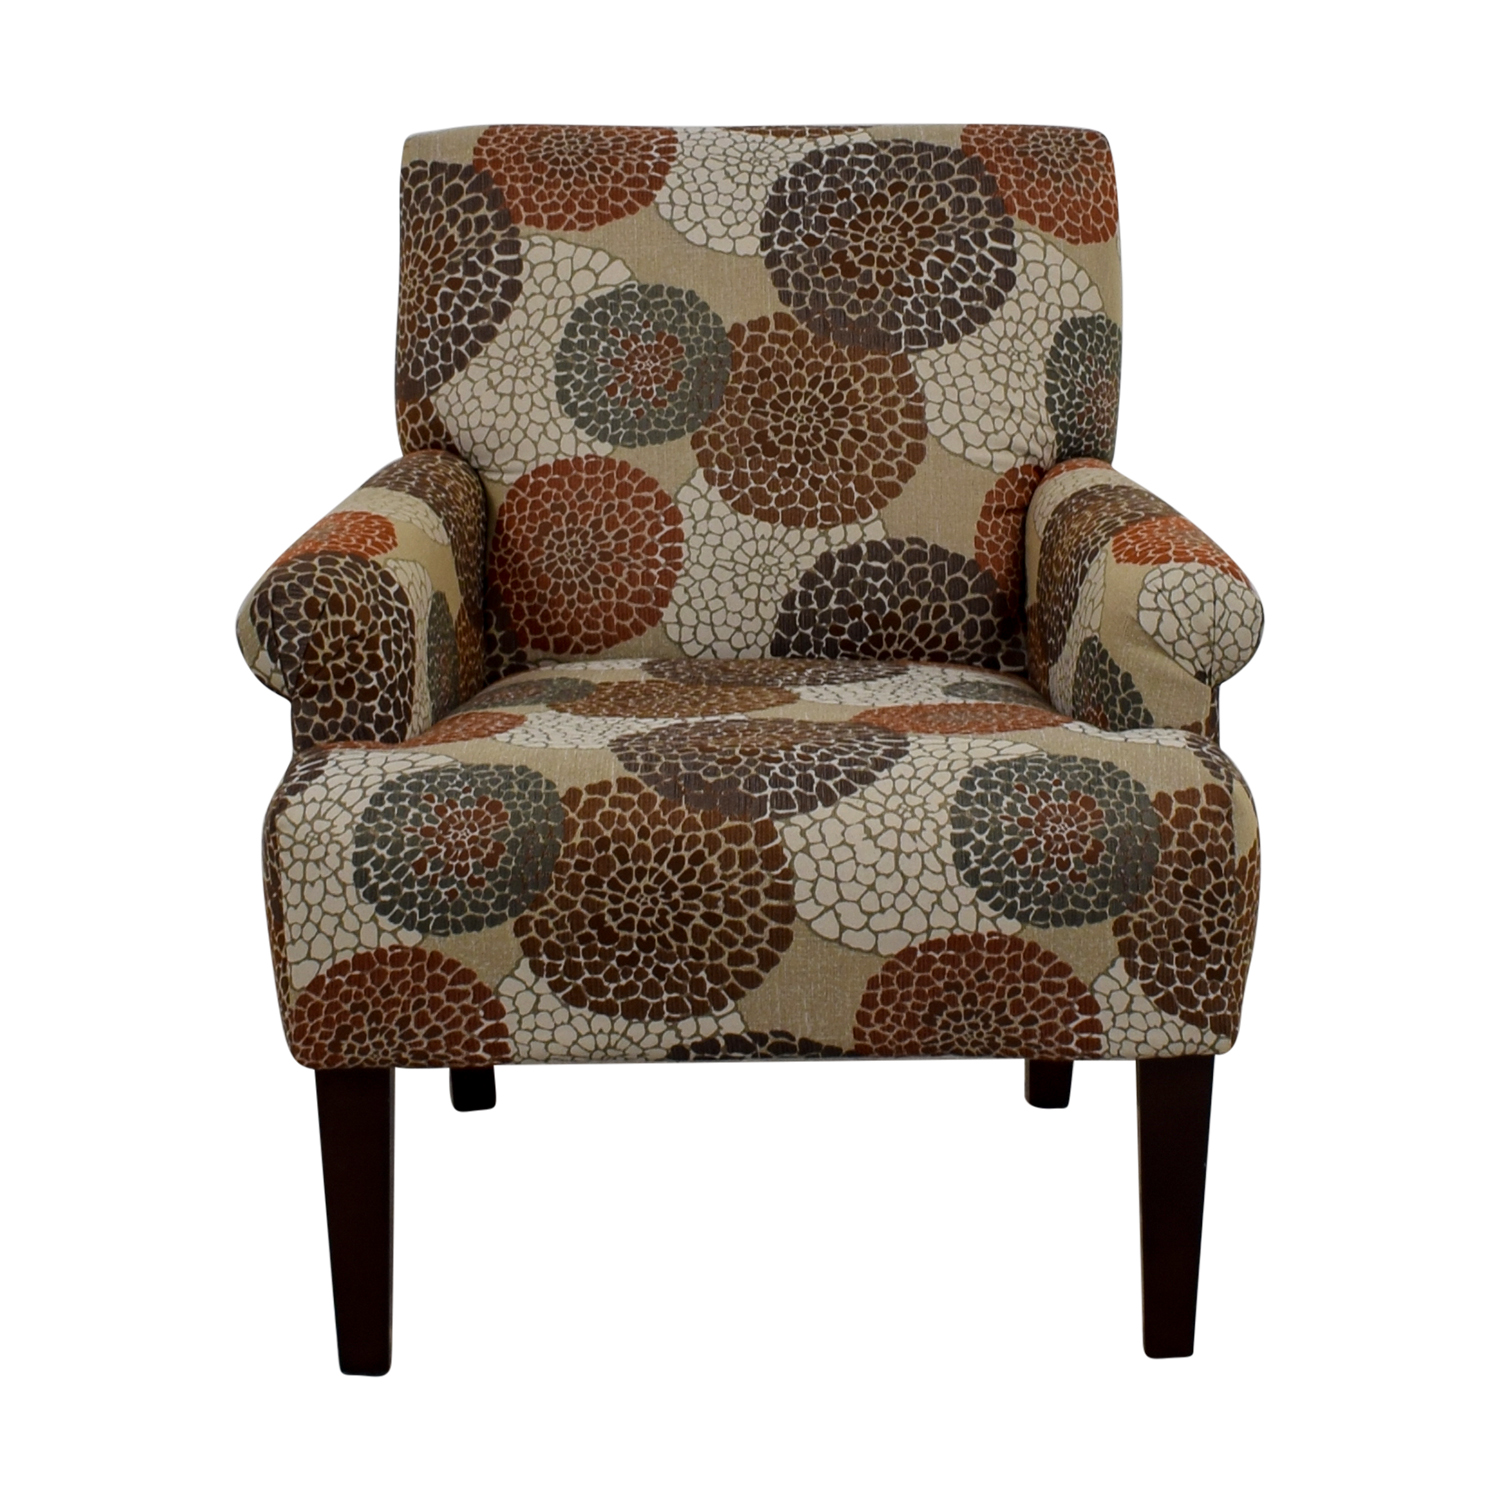 Raymour & Flanigan Raymour & Flanigan Multi-Colored Floral Accent Chair used